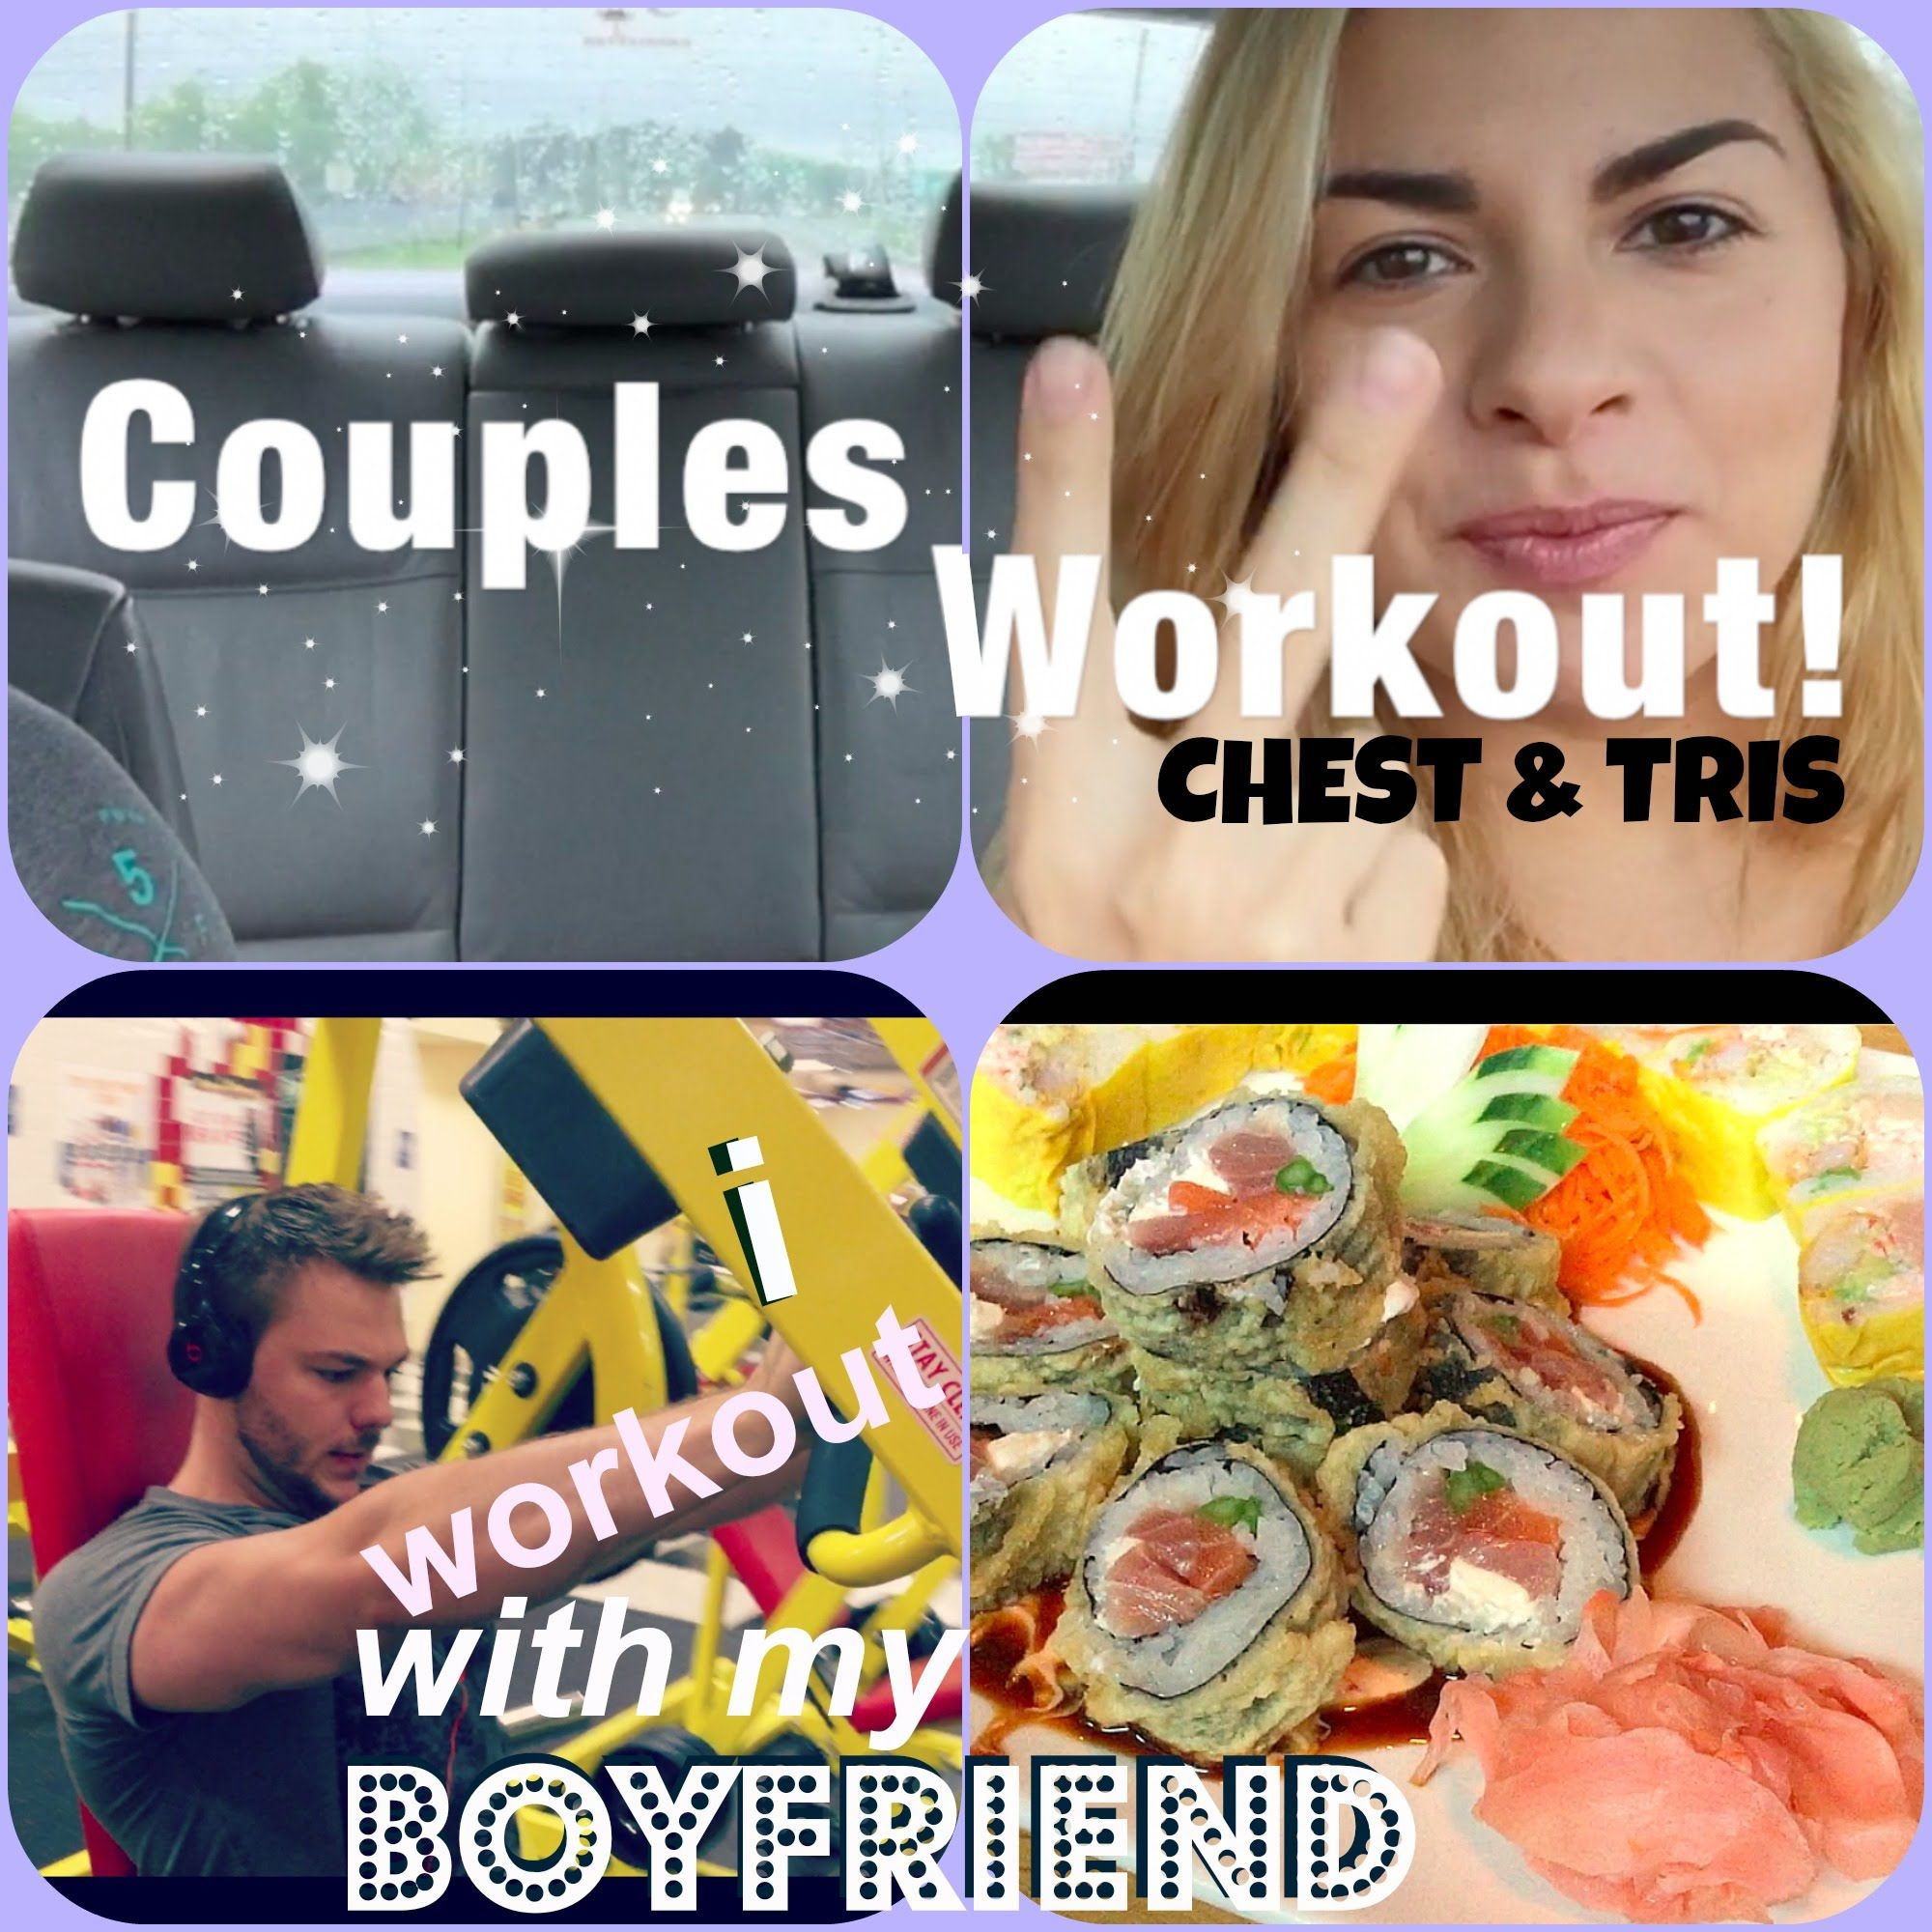 I #WORKOUT WITH MY #BOYFRIEND ep. 2 chest & tris + current physique + JAPA... #fullWorkout #videos #fitness #howTo #girl #couples #chest #tris #gym